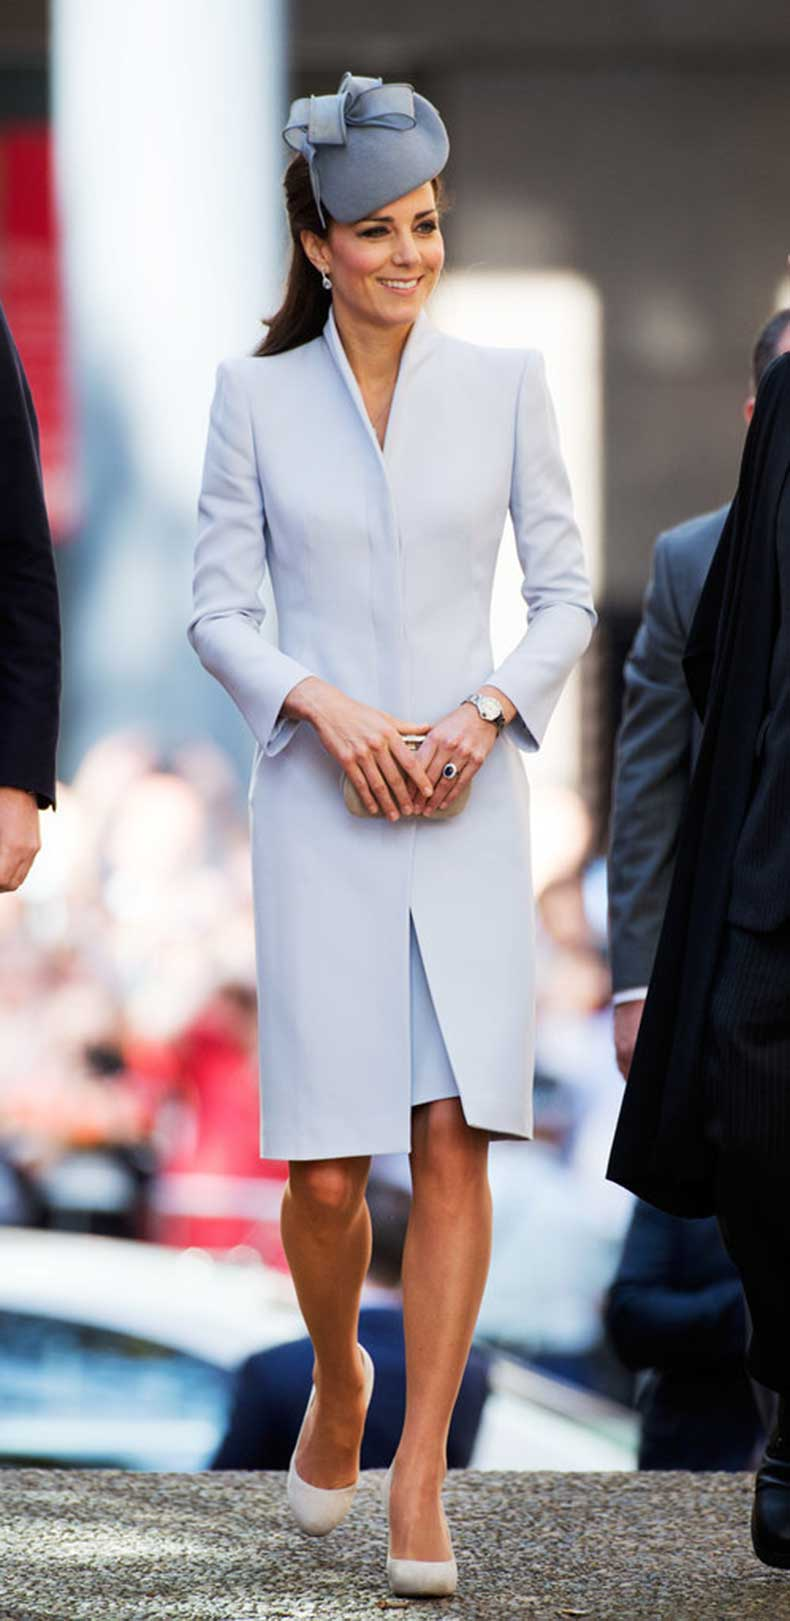 You-Can-Never-Go-Wrong-Crisply-Tailored-Ensemble-Pastel-Hue